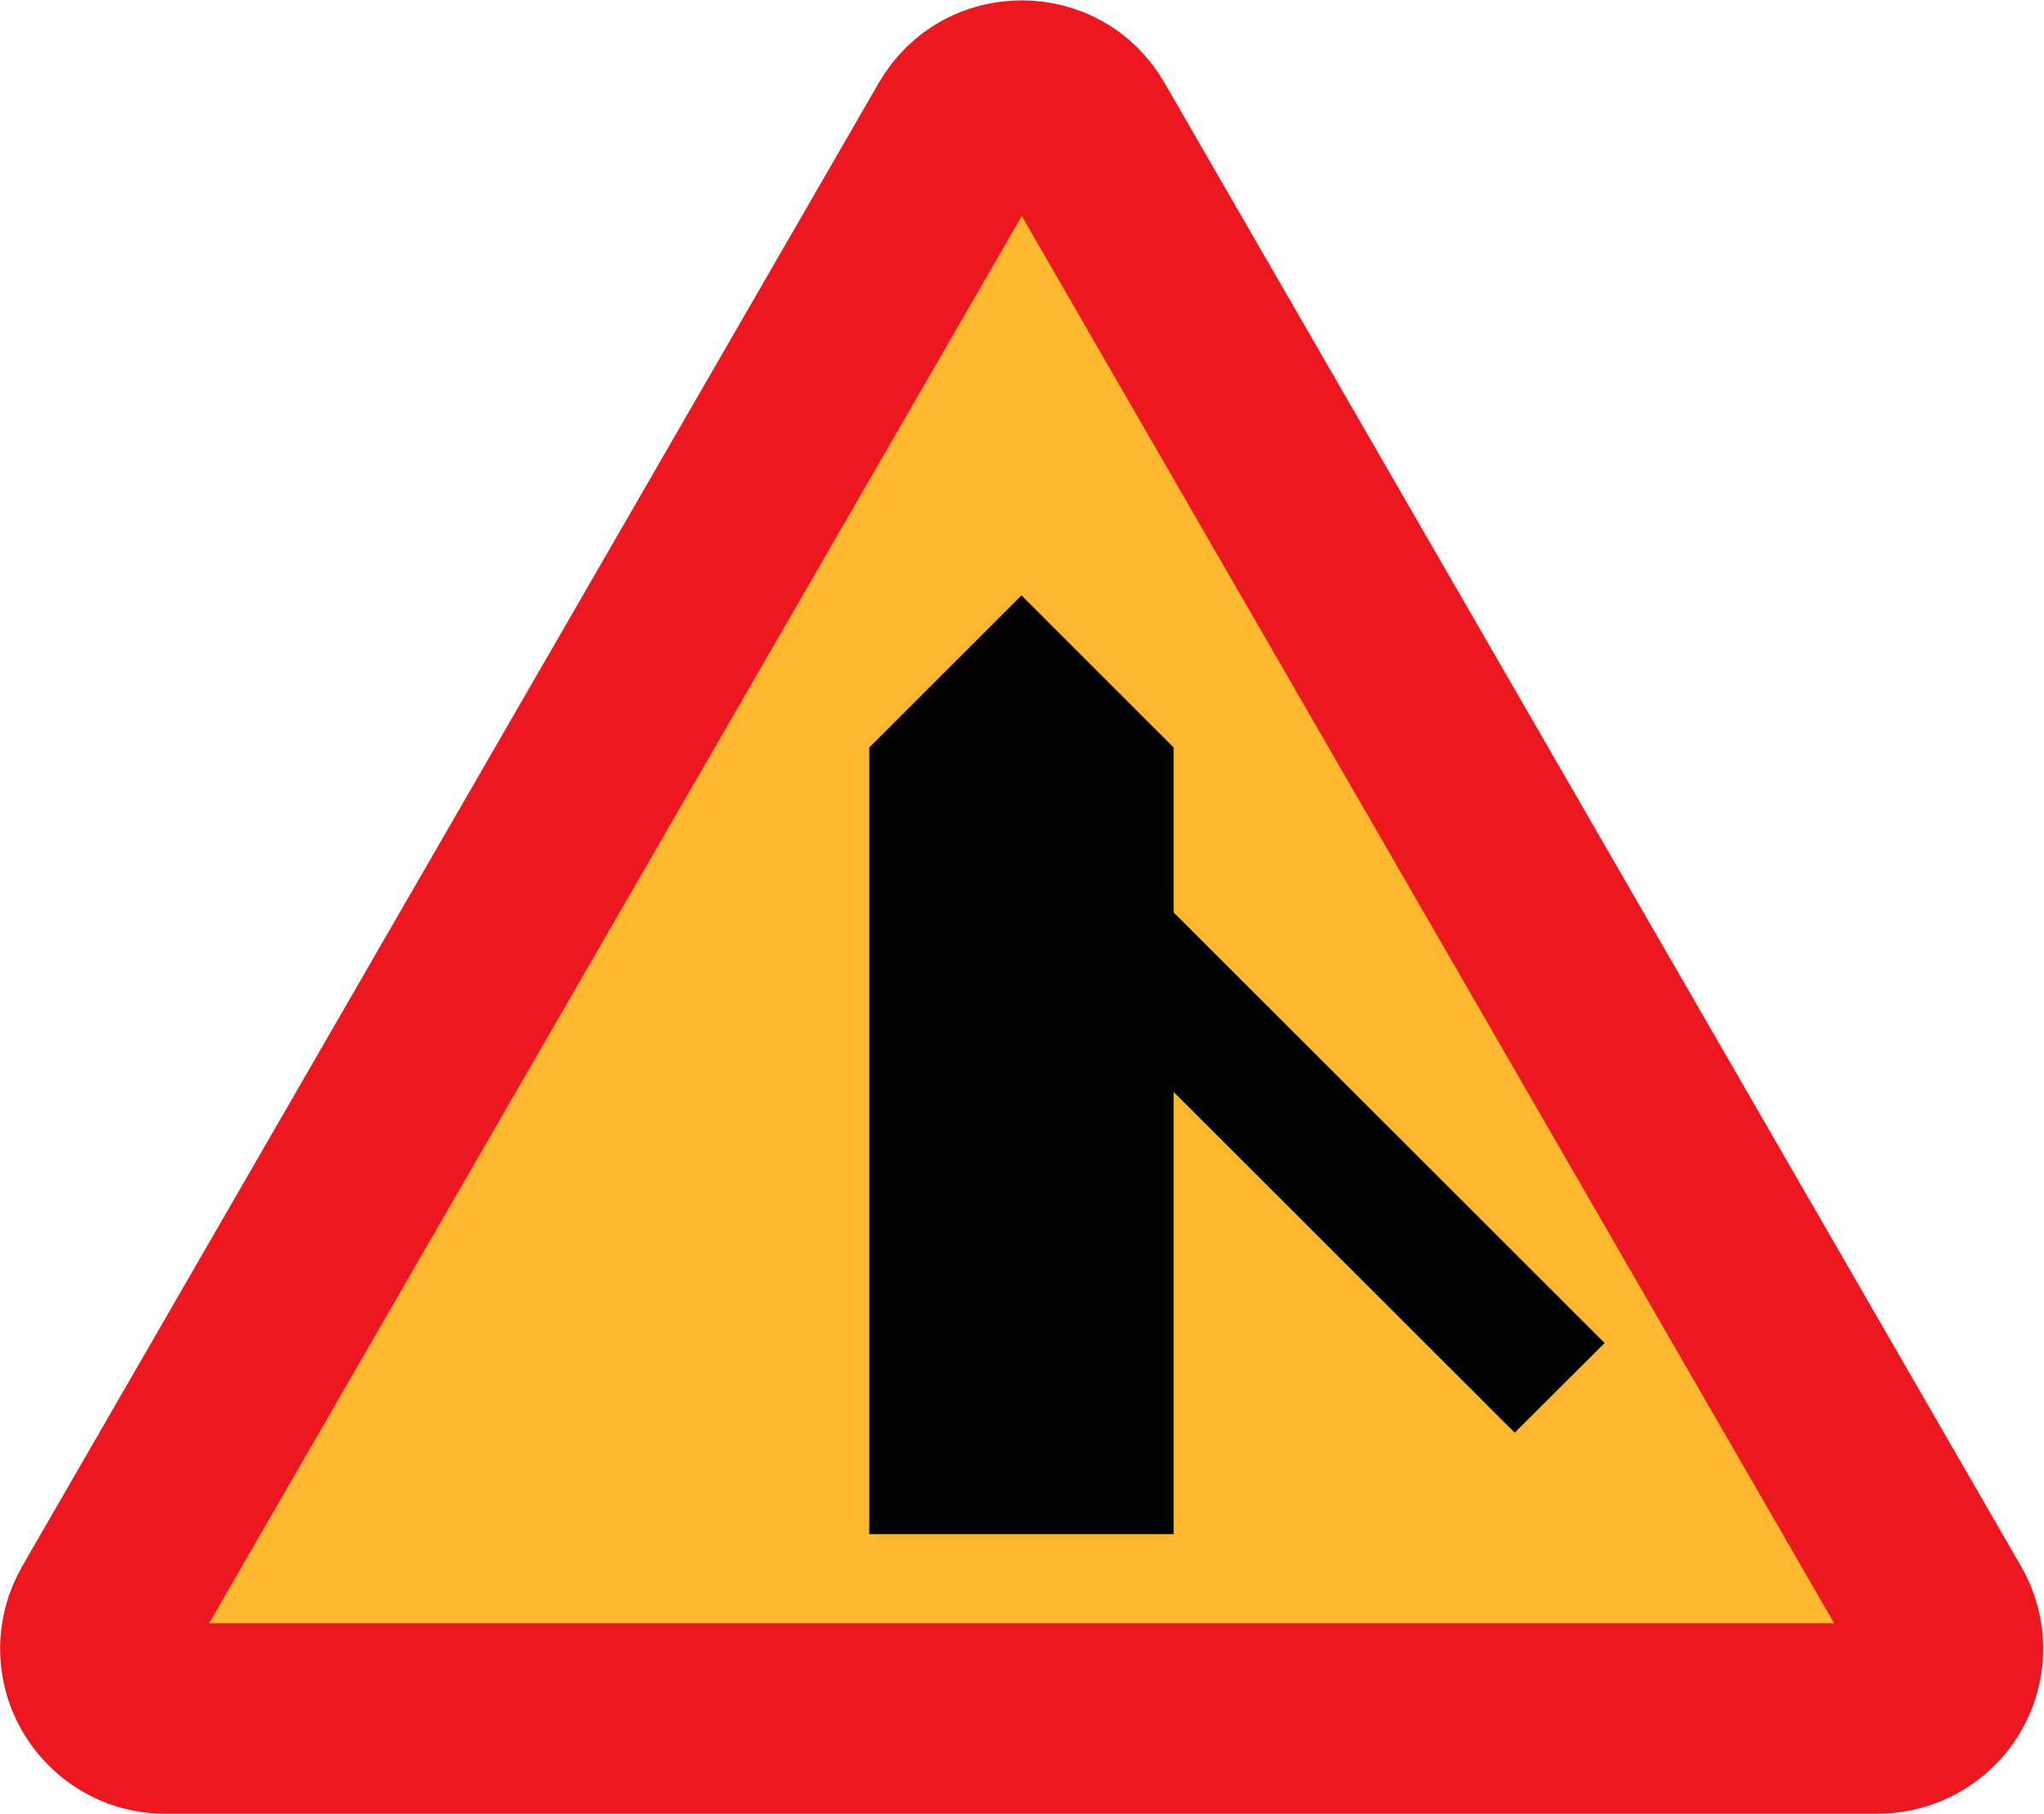 Roadlayout sign 7 by ryanlerch